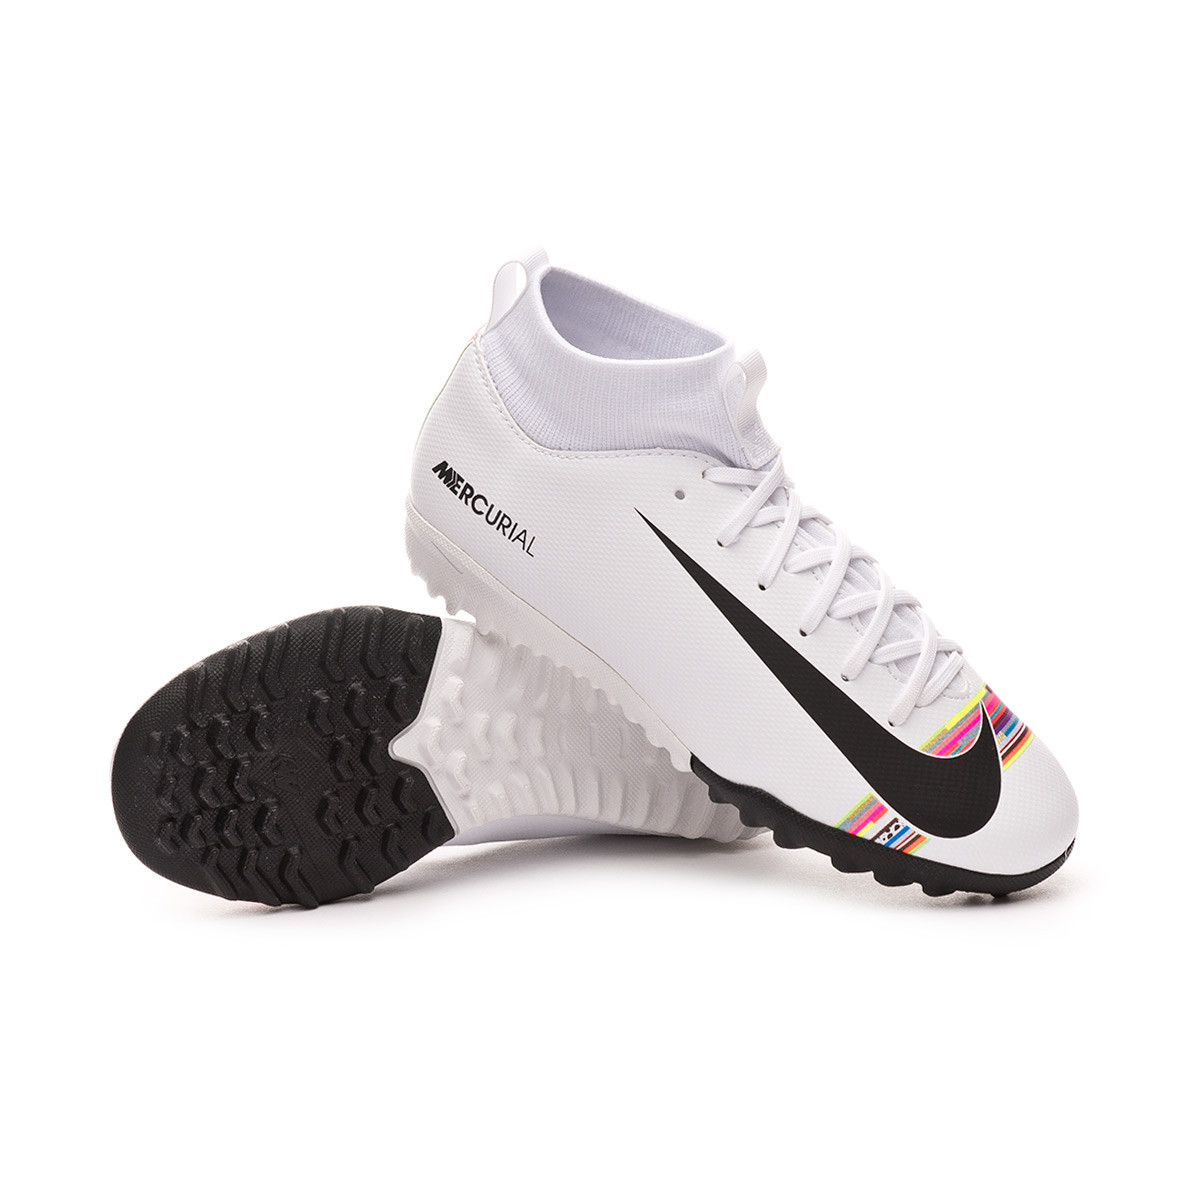 authentic get online save up to 80% Nike Kids Mercurial SuperflyX VI Academy LVL PV Turf Football Boot